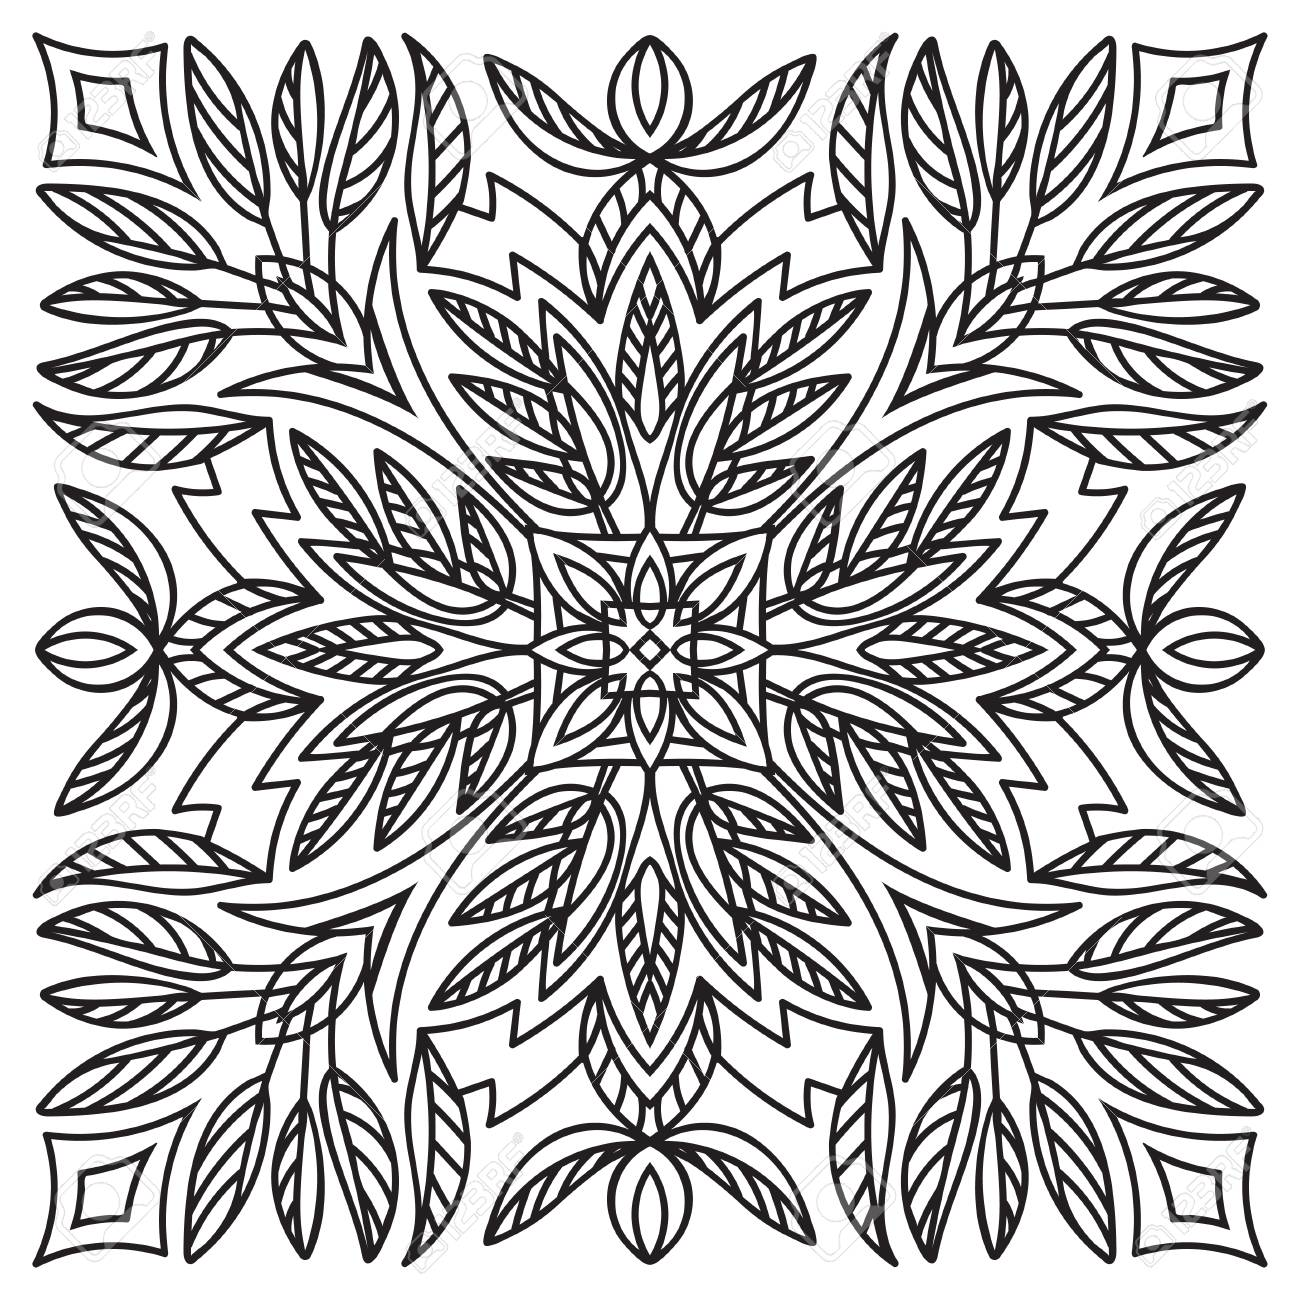 1300x1300 Hand Drawing Element. Italian Majolica Style Black And White